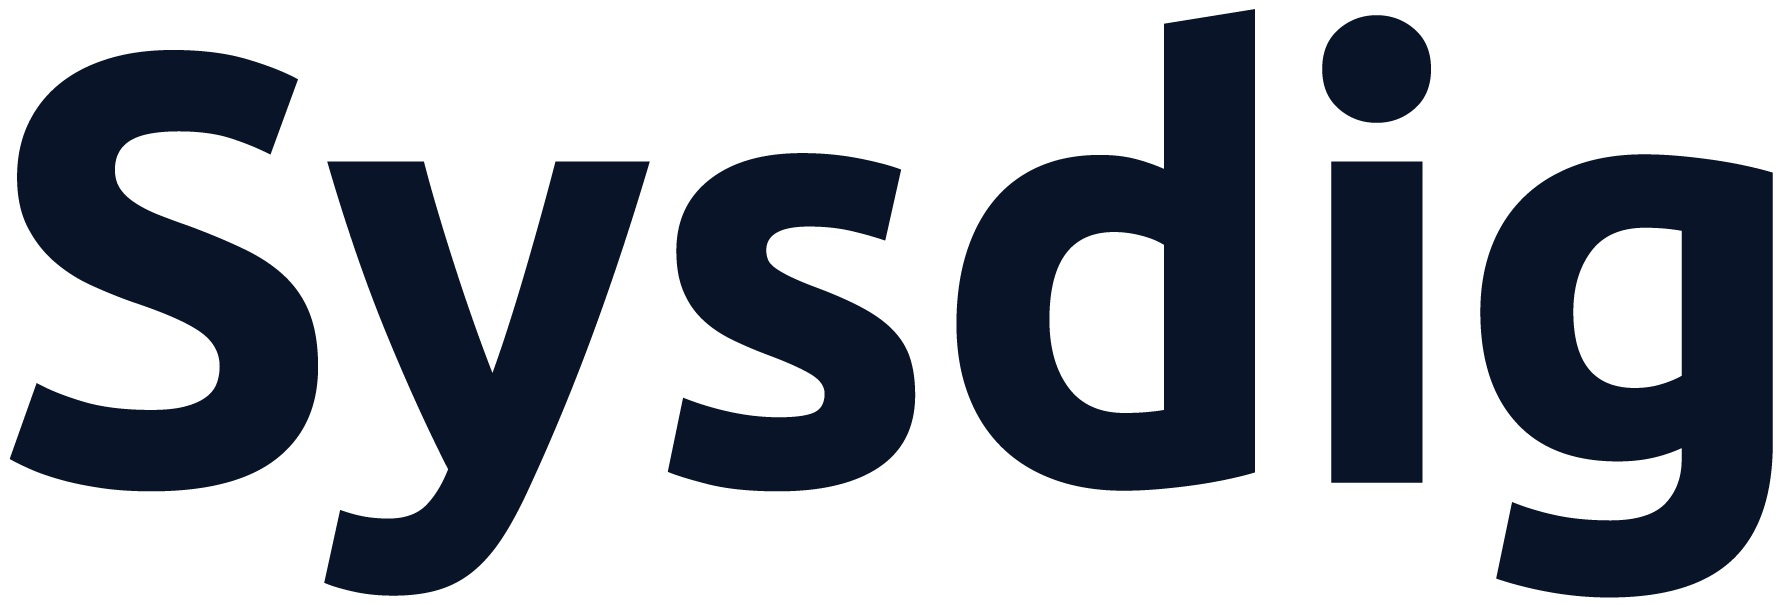 Sysdig logo 2018.png